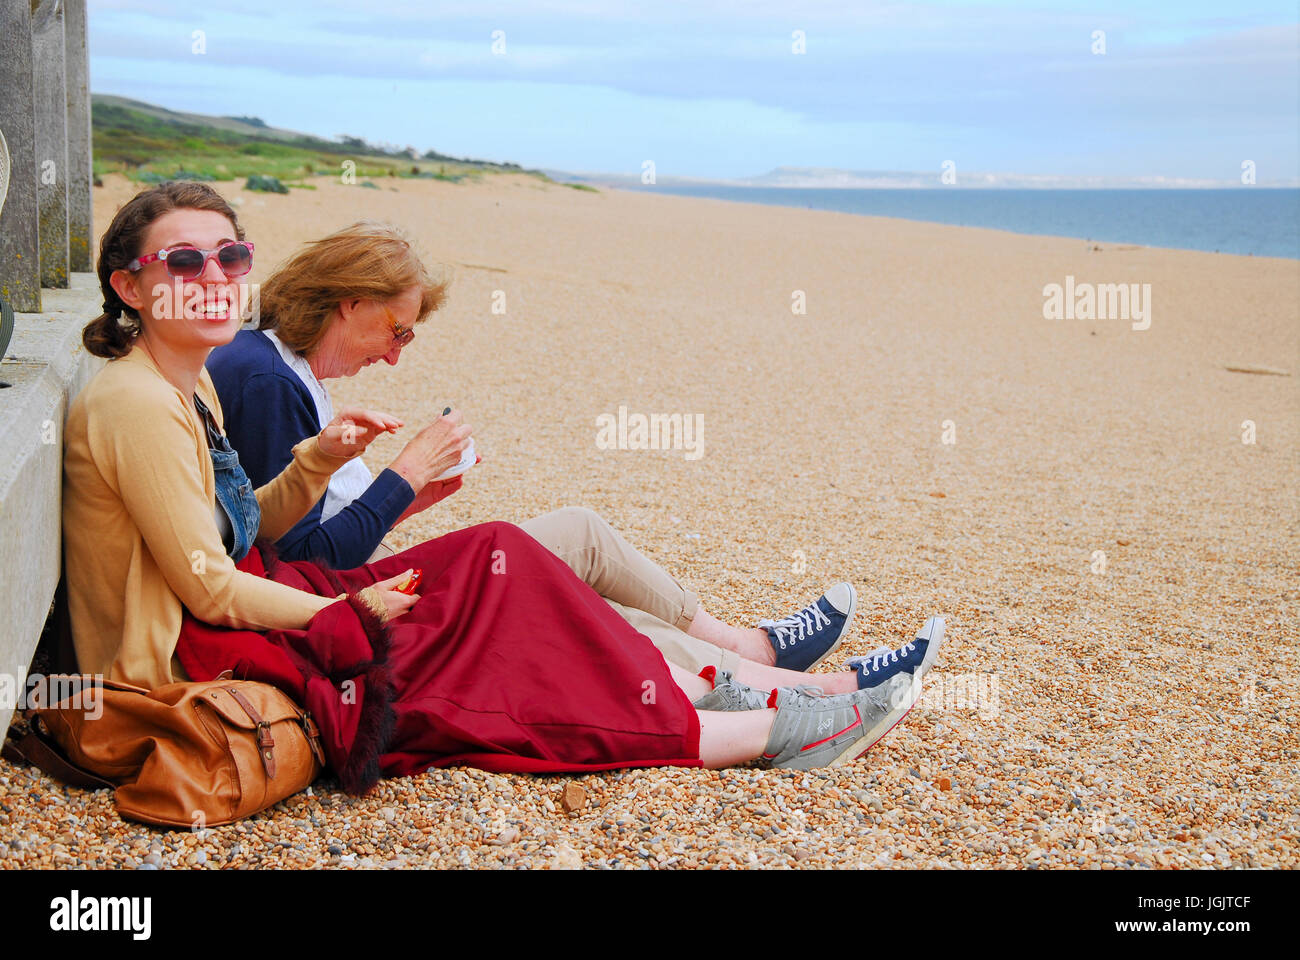 Chesil Beach, Dorset, UK. 7th July, 2017. Two women enjoy a picnic on Chesil Beach, West Bexington, as the onshore - Stock Image